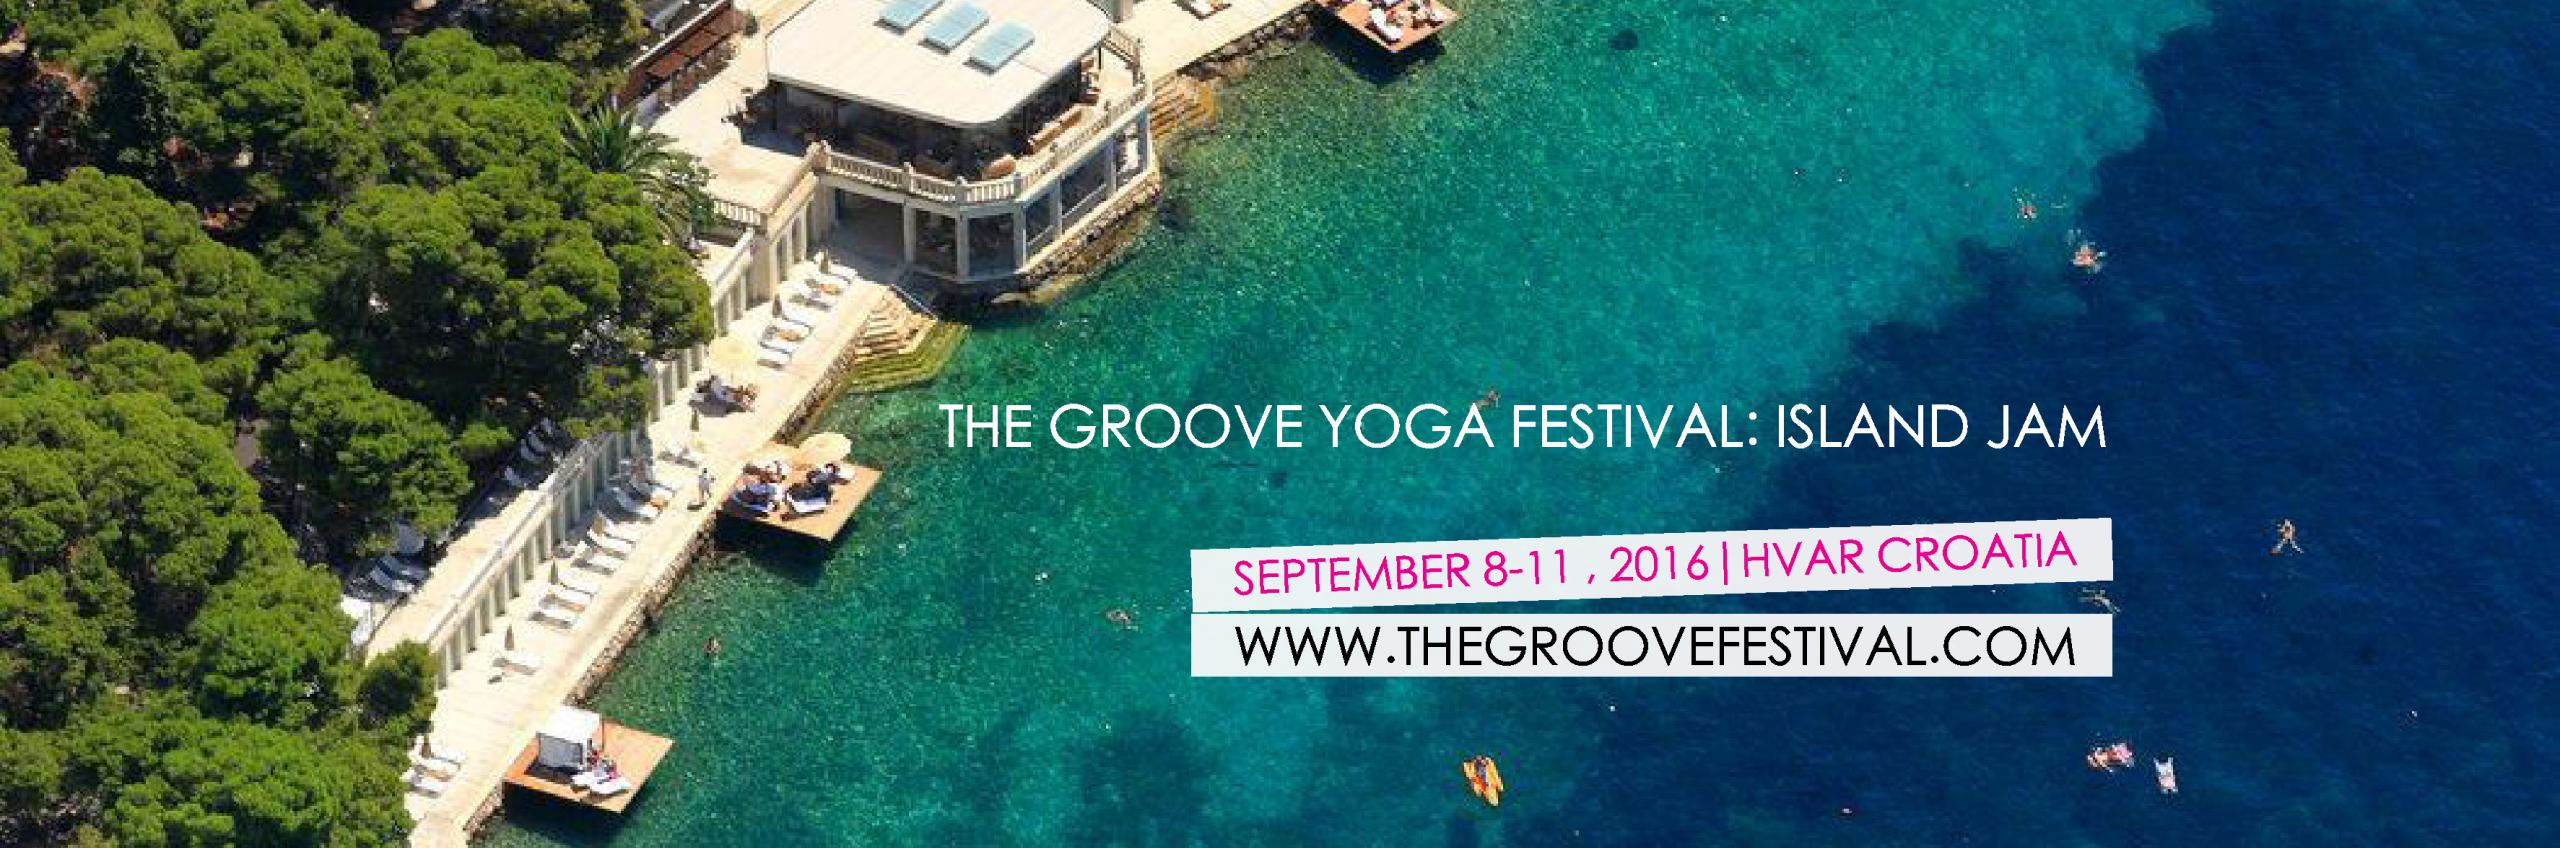 The Groove Yoga Festival at Amfora, hvar grand beach resort